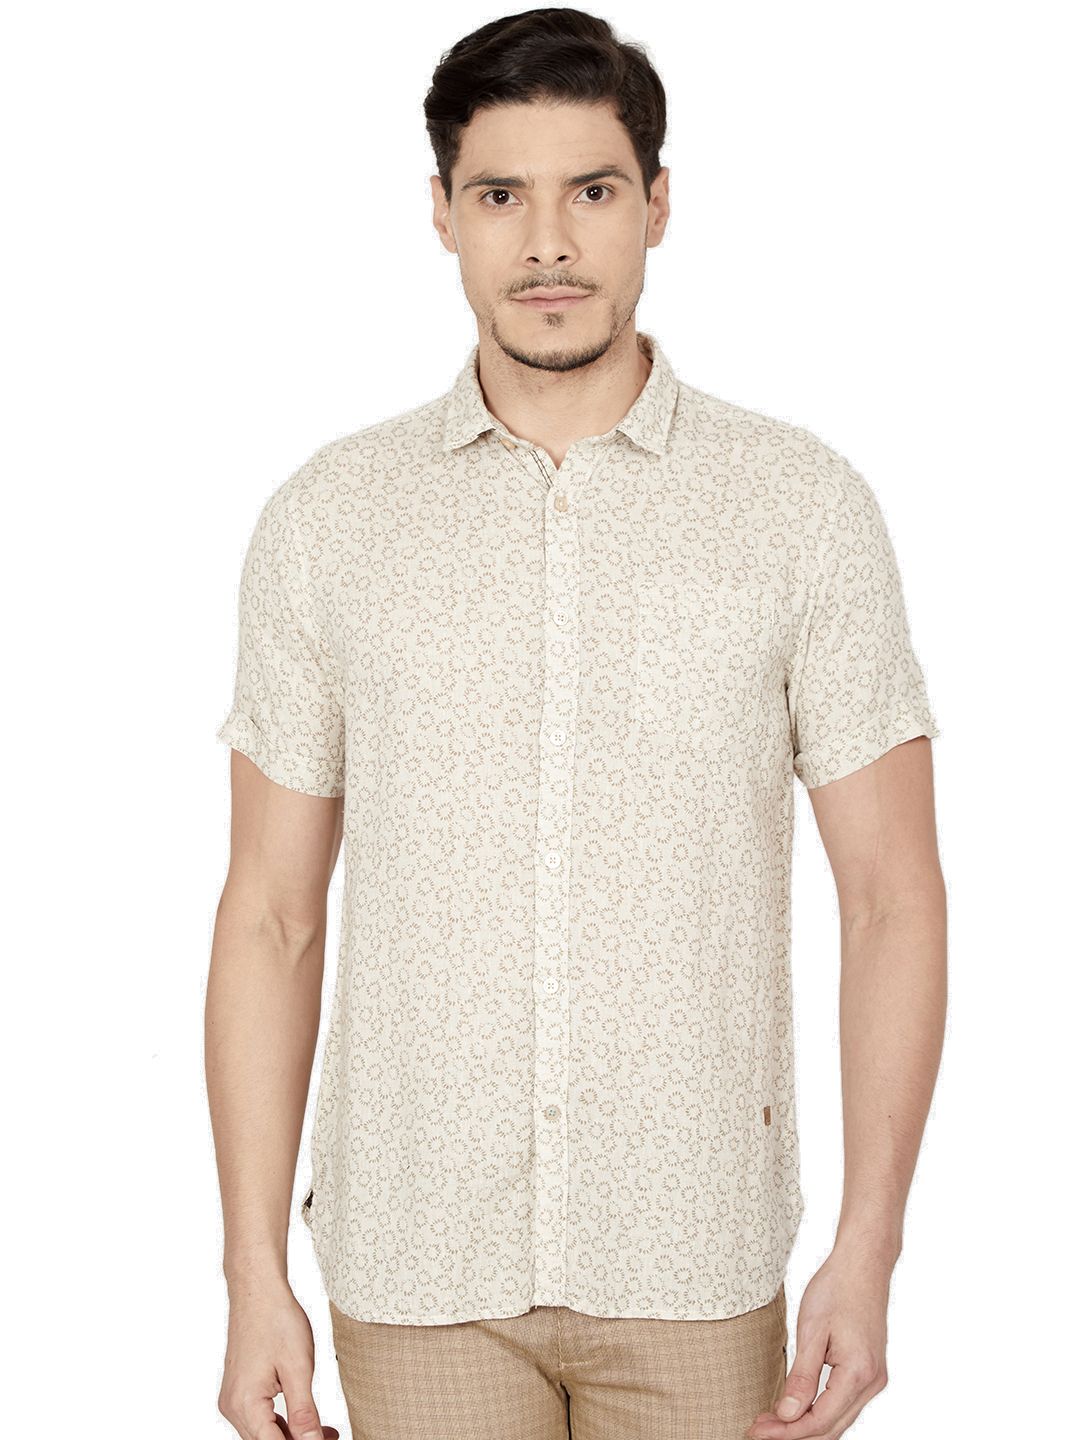 OXEMBERG | Oxemberg Men's Cotton Slim-fit Printed Casual Shirt